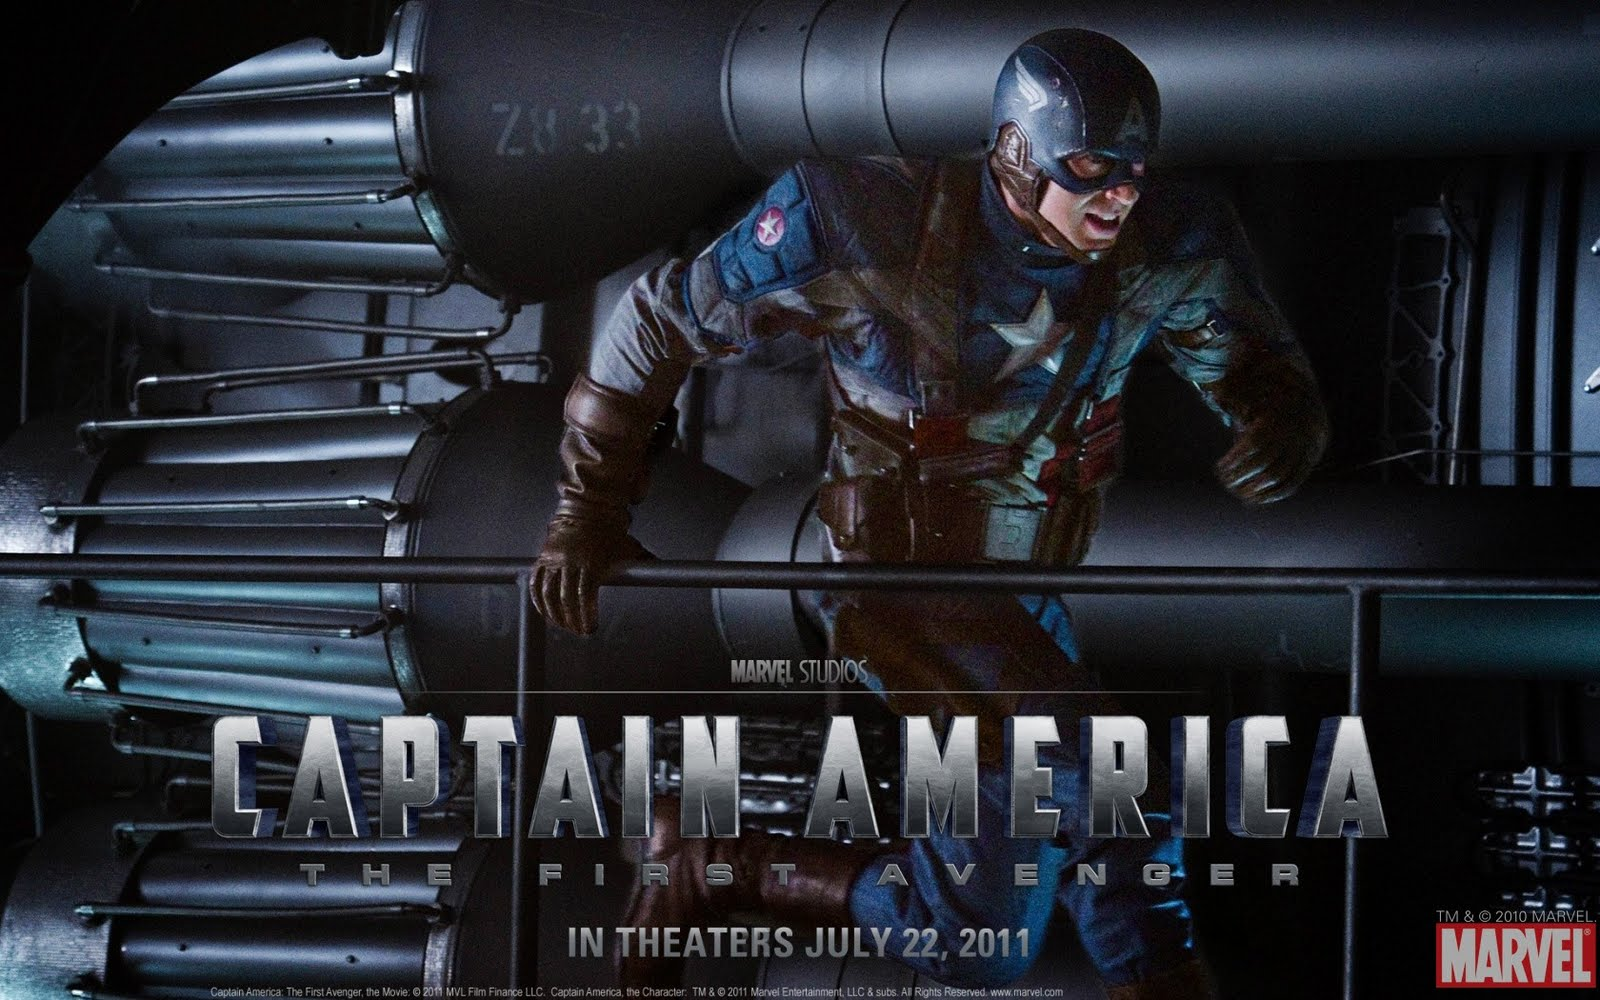 http://4.bp.blogspot.com/-6m0pWa9iP1U/TjQ4NKbNPsI/AAAAAAAAB4s/oDVkE3c7ZoI/s1600/Chris_Evans_in_Captain_America%2B_The_First_Avenger_Wallpaper_3_1024.jpg